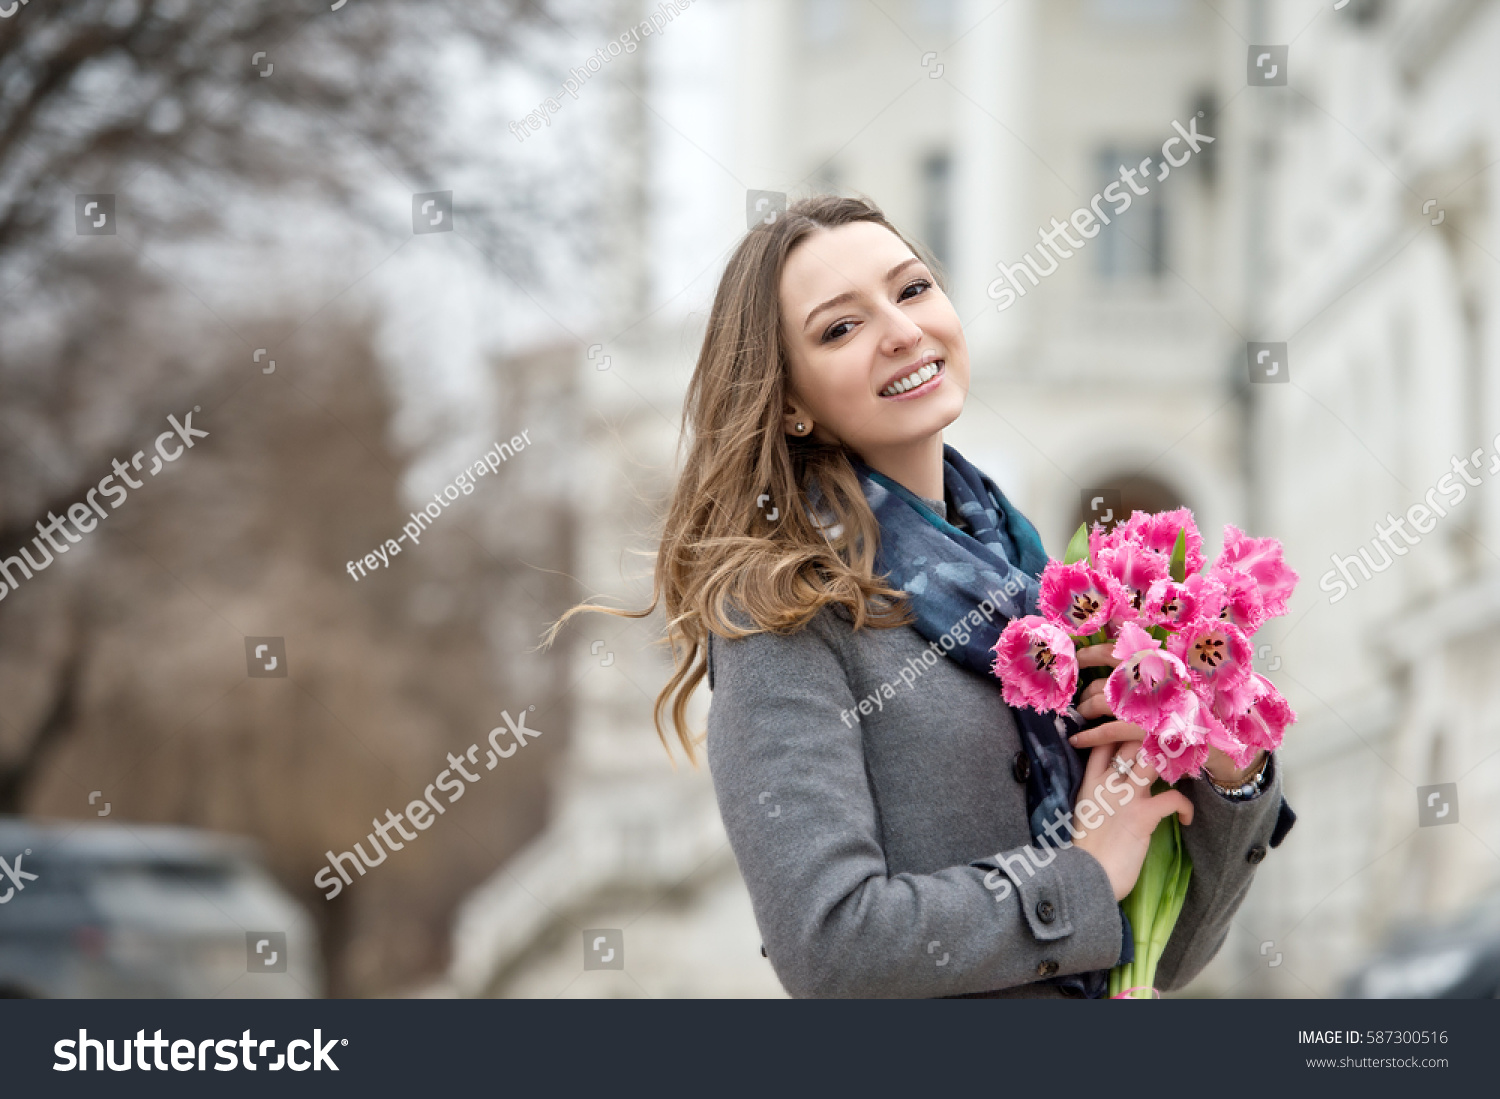 Woman with tulips beautiful woman with flowers series ez canvas id 587300516 izmirmasajfo